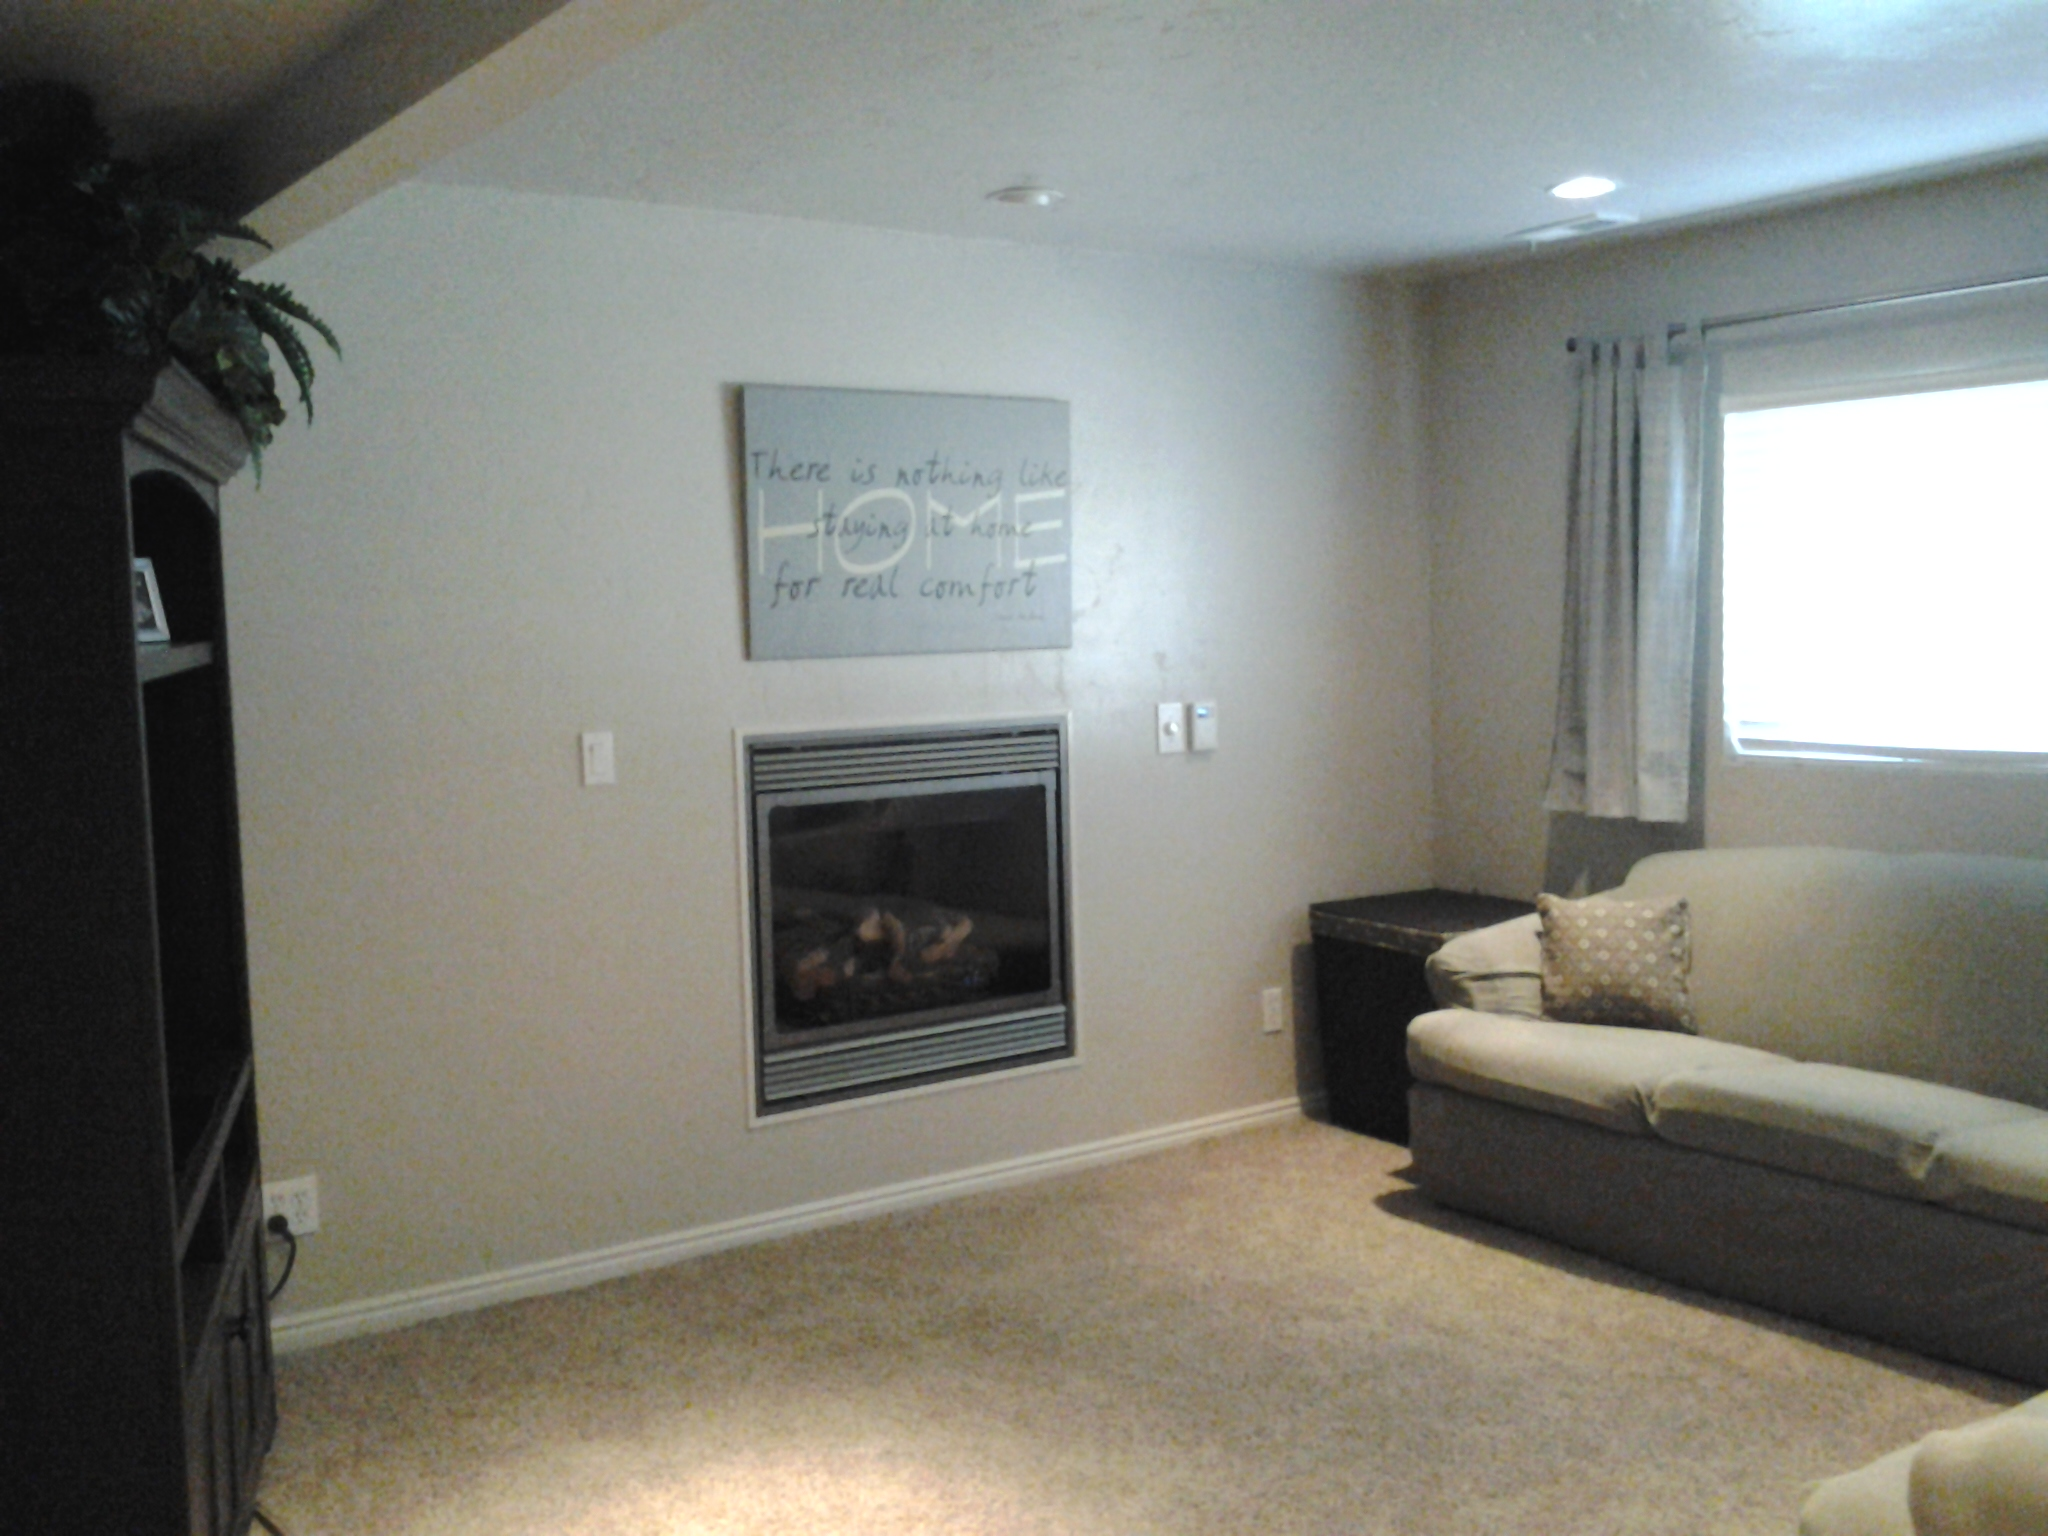 Opinions of big screen tv above a fireplace ceiling